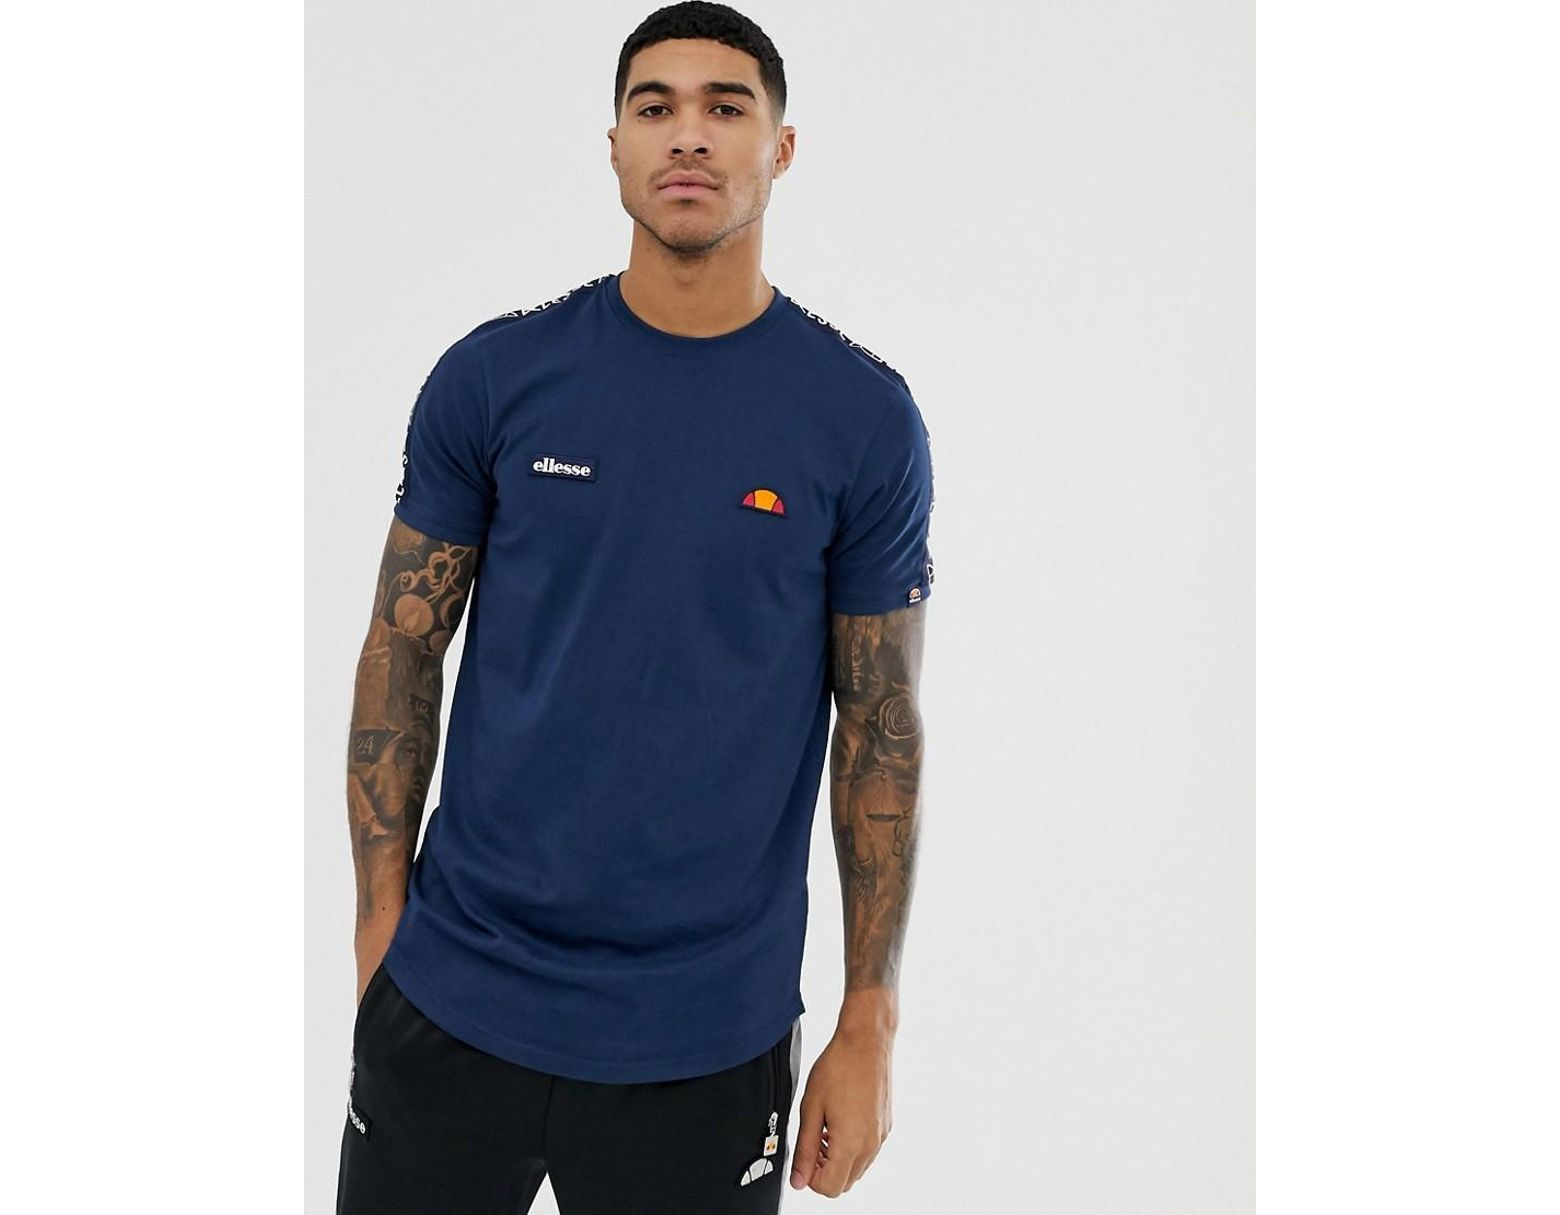 33878c10436 Ellesse Fede T-shirt With Logo Taping In Navy in Blue for Men - Lyst